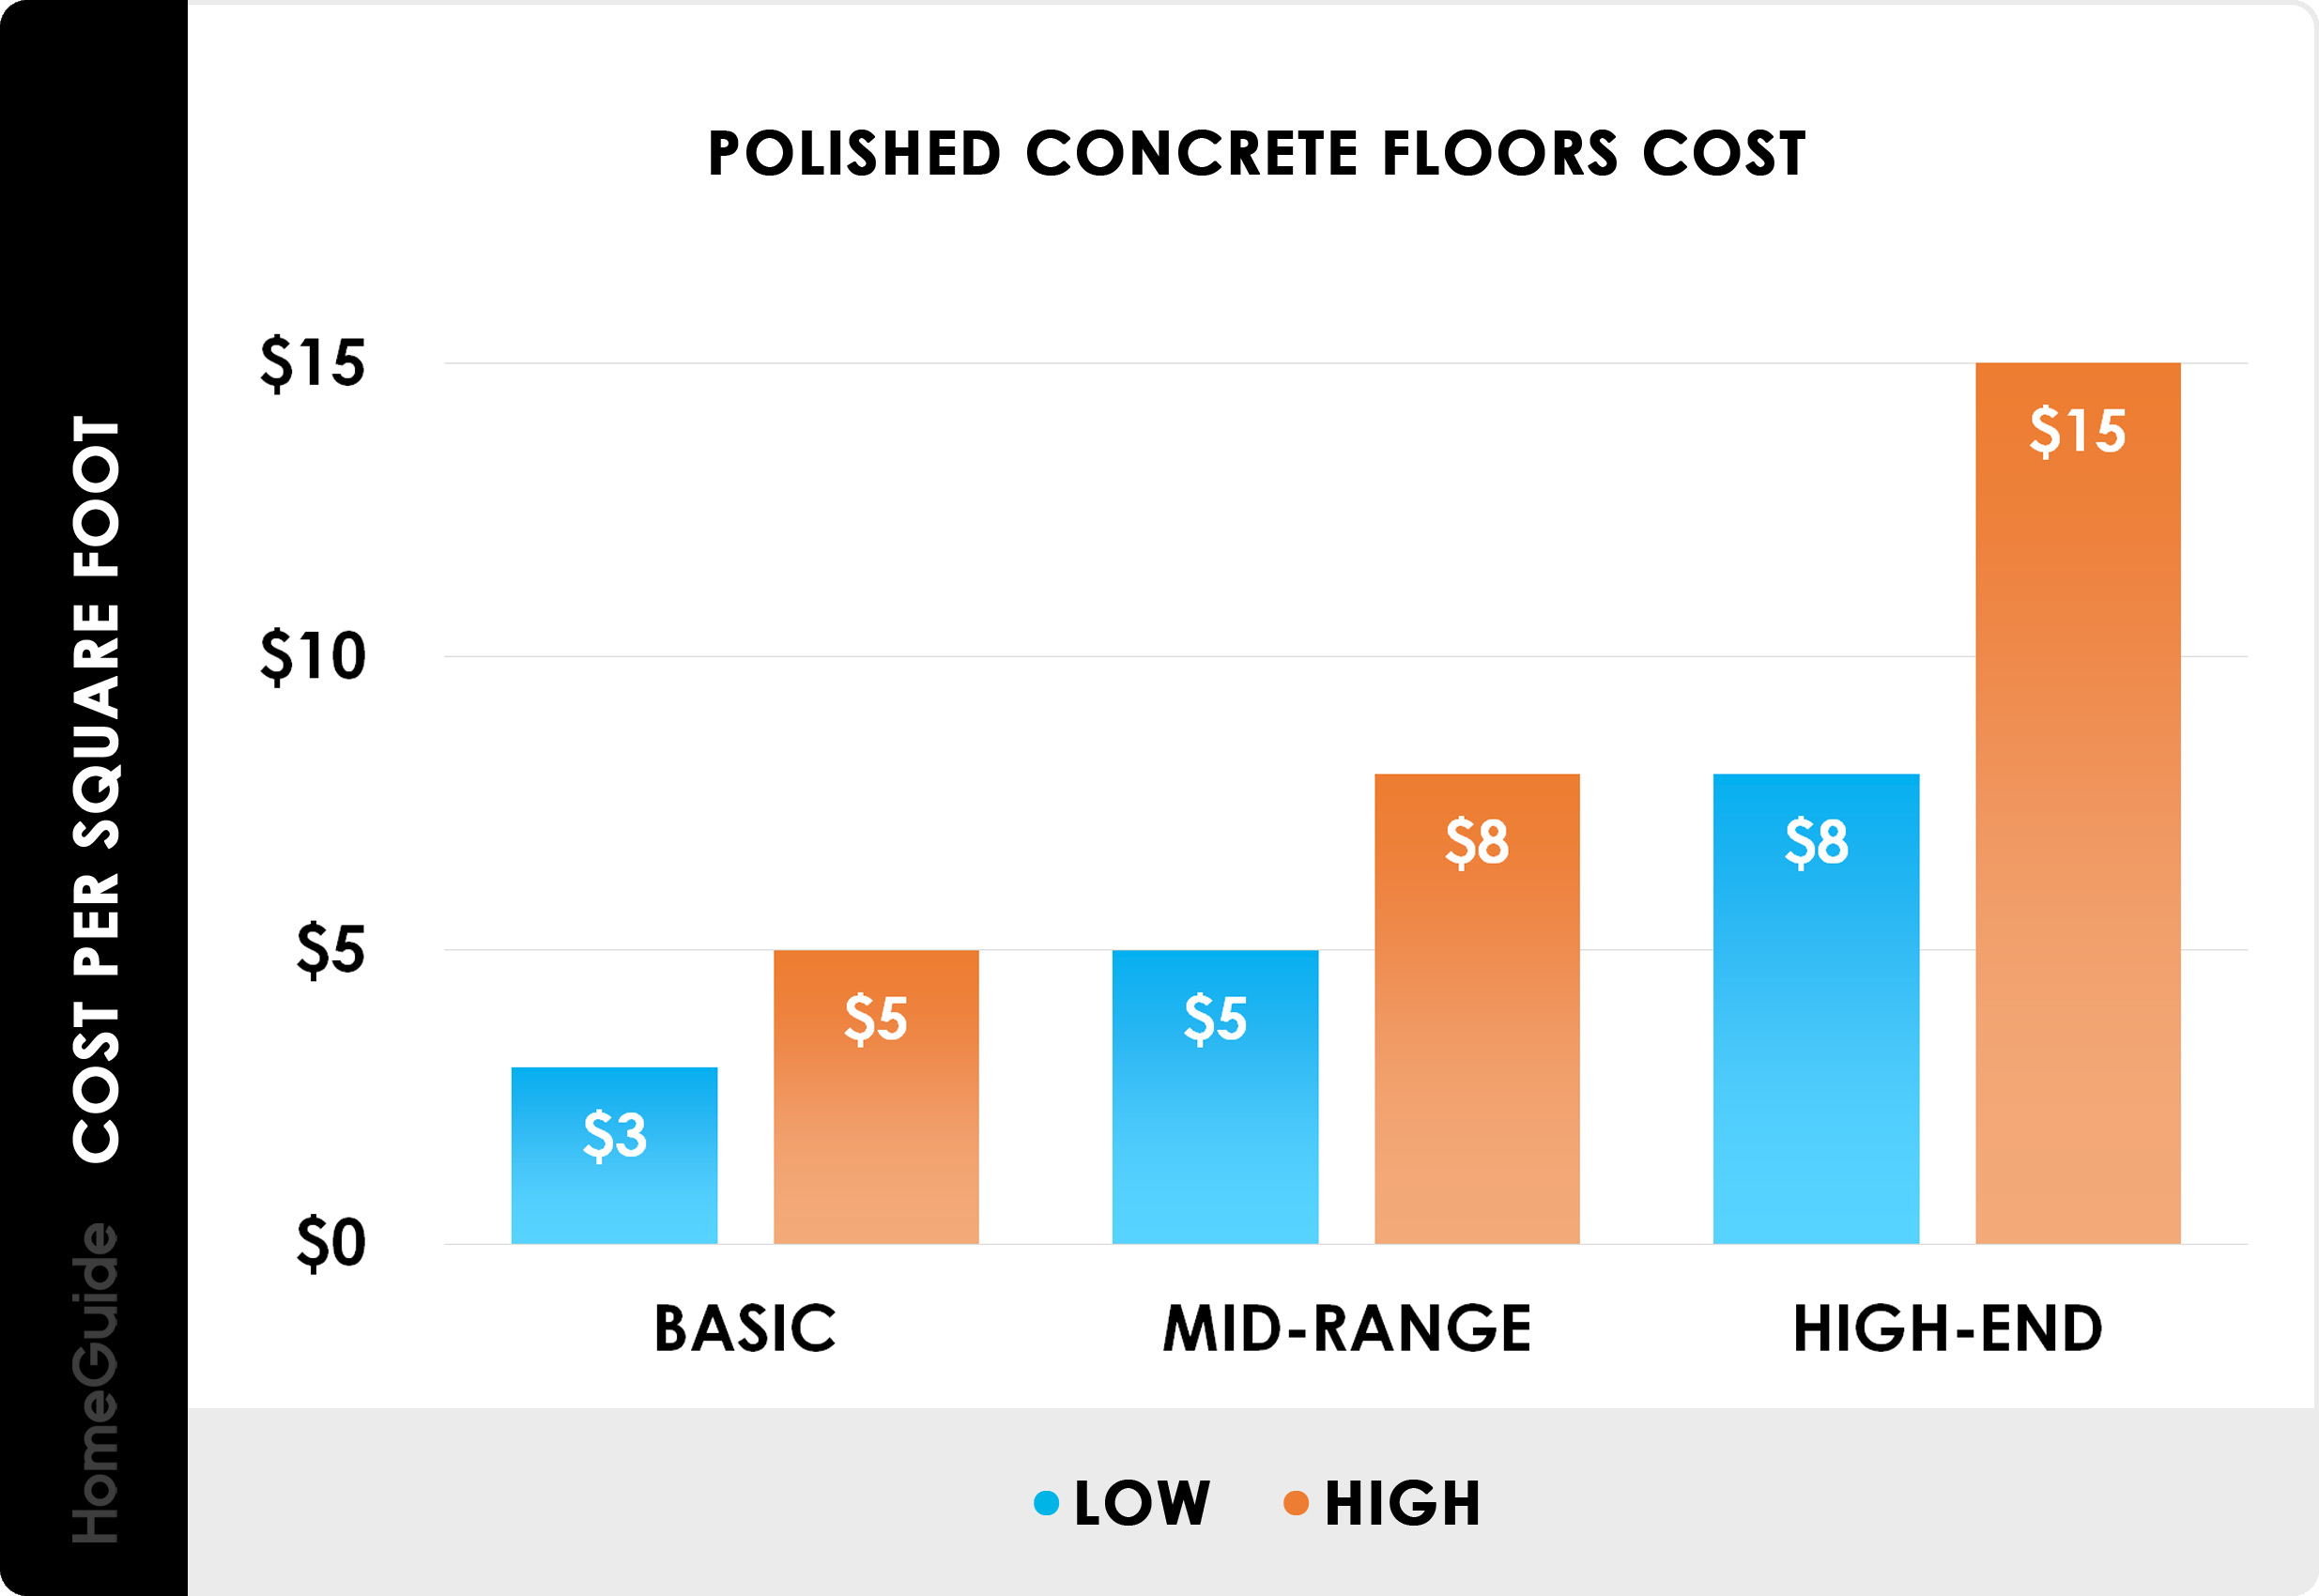 7 Polished Concrete Floors Cost  Grind & Seal (Per Sq. Ft.)